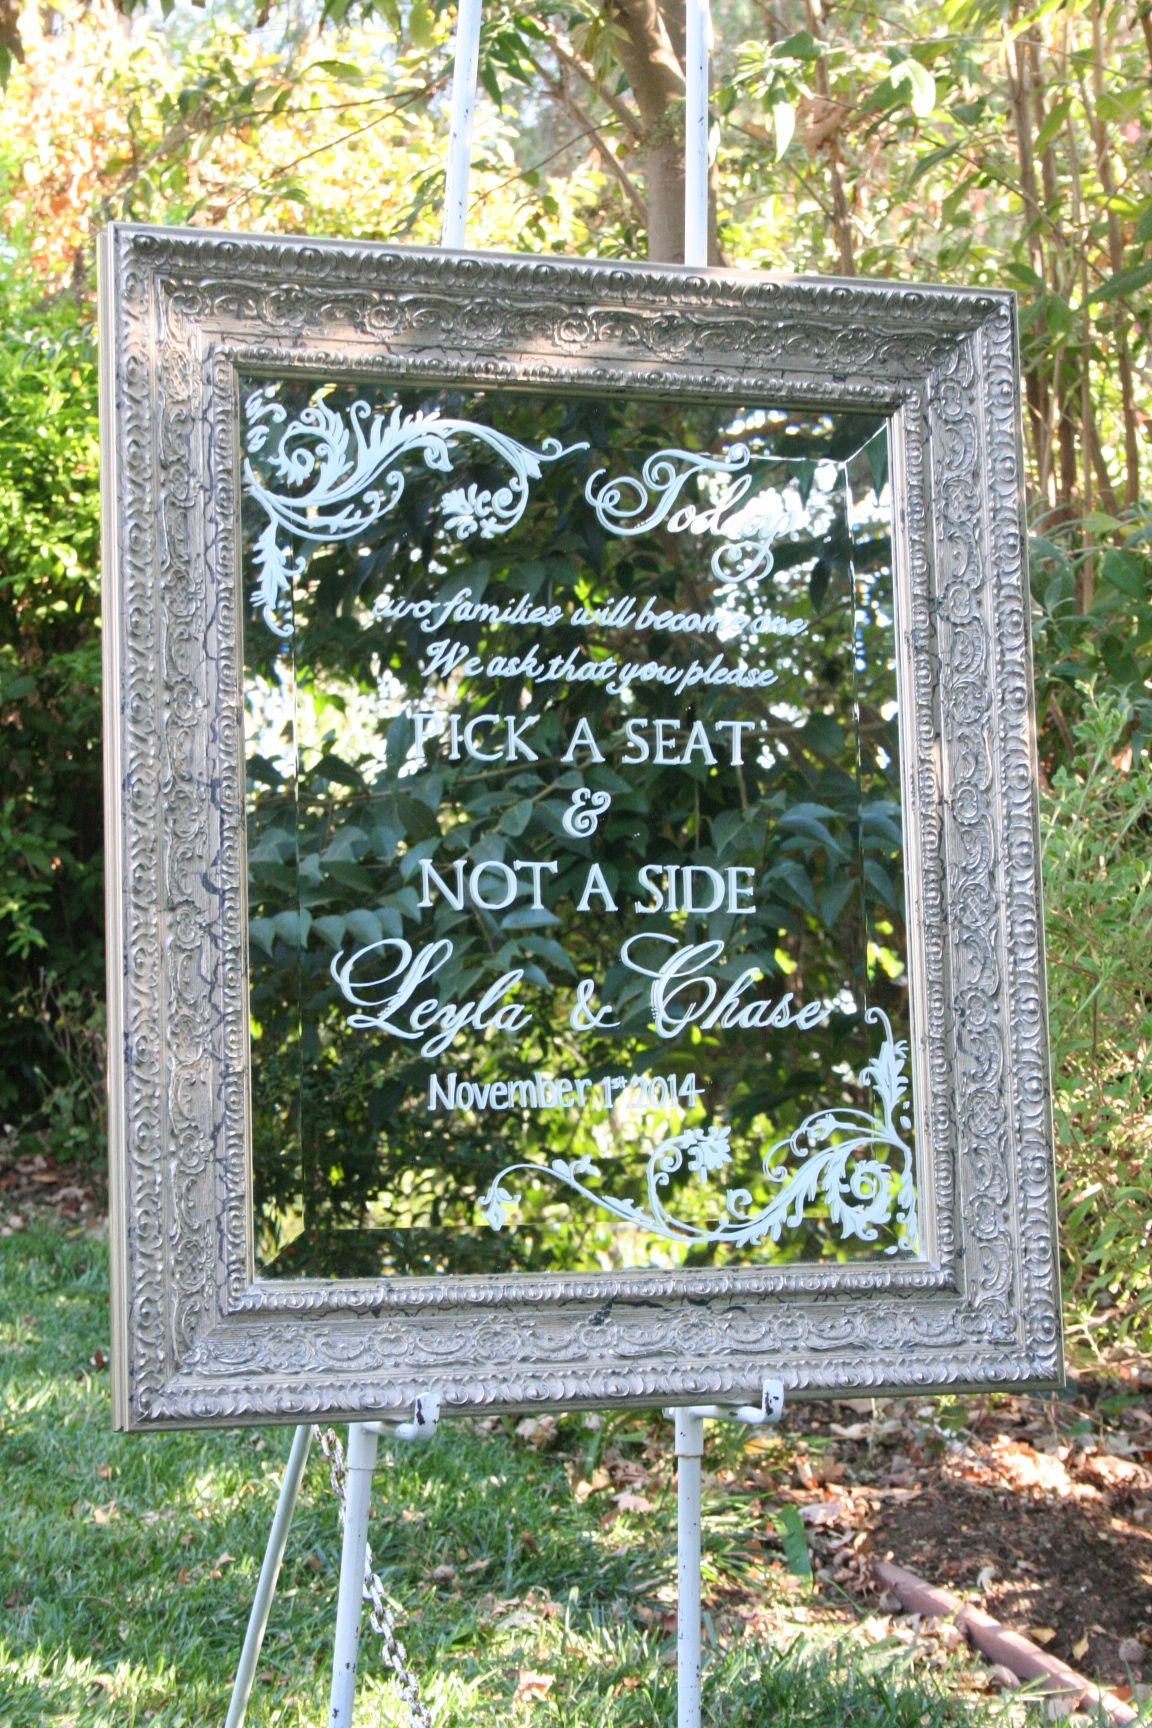 Parisian Framed Mirror Wedding Welcome Design Details. Remedies Signs Of Stroke. Inner Signs. Gemstone Signs. Open Signs. Sunsign Signs Of Stroke. Escalator Signs. Dere Signs. Session Signs